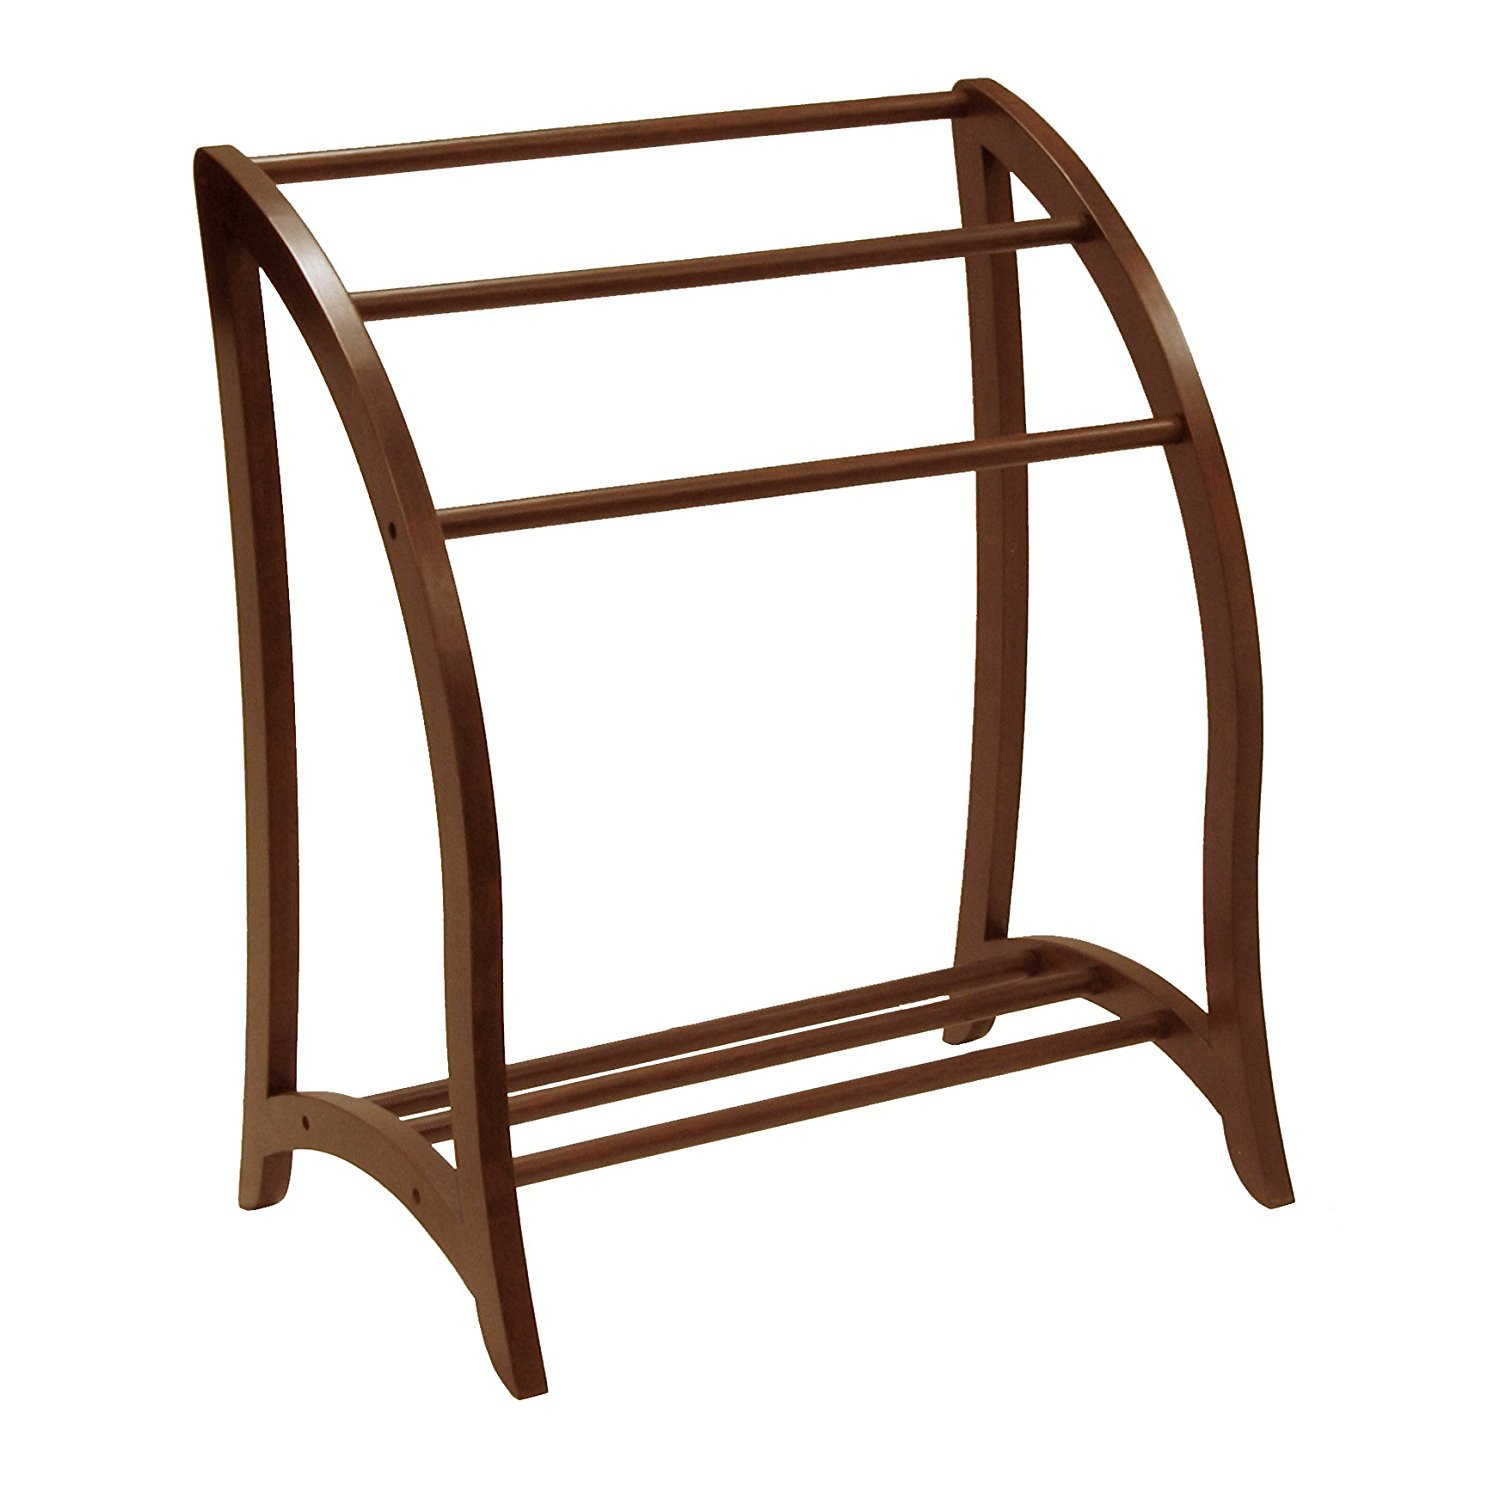 Winsome Wood Blanket Rack, Antique Walnut (Pack of 2) by Winsome Wood (Image #2)